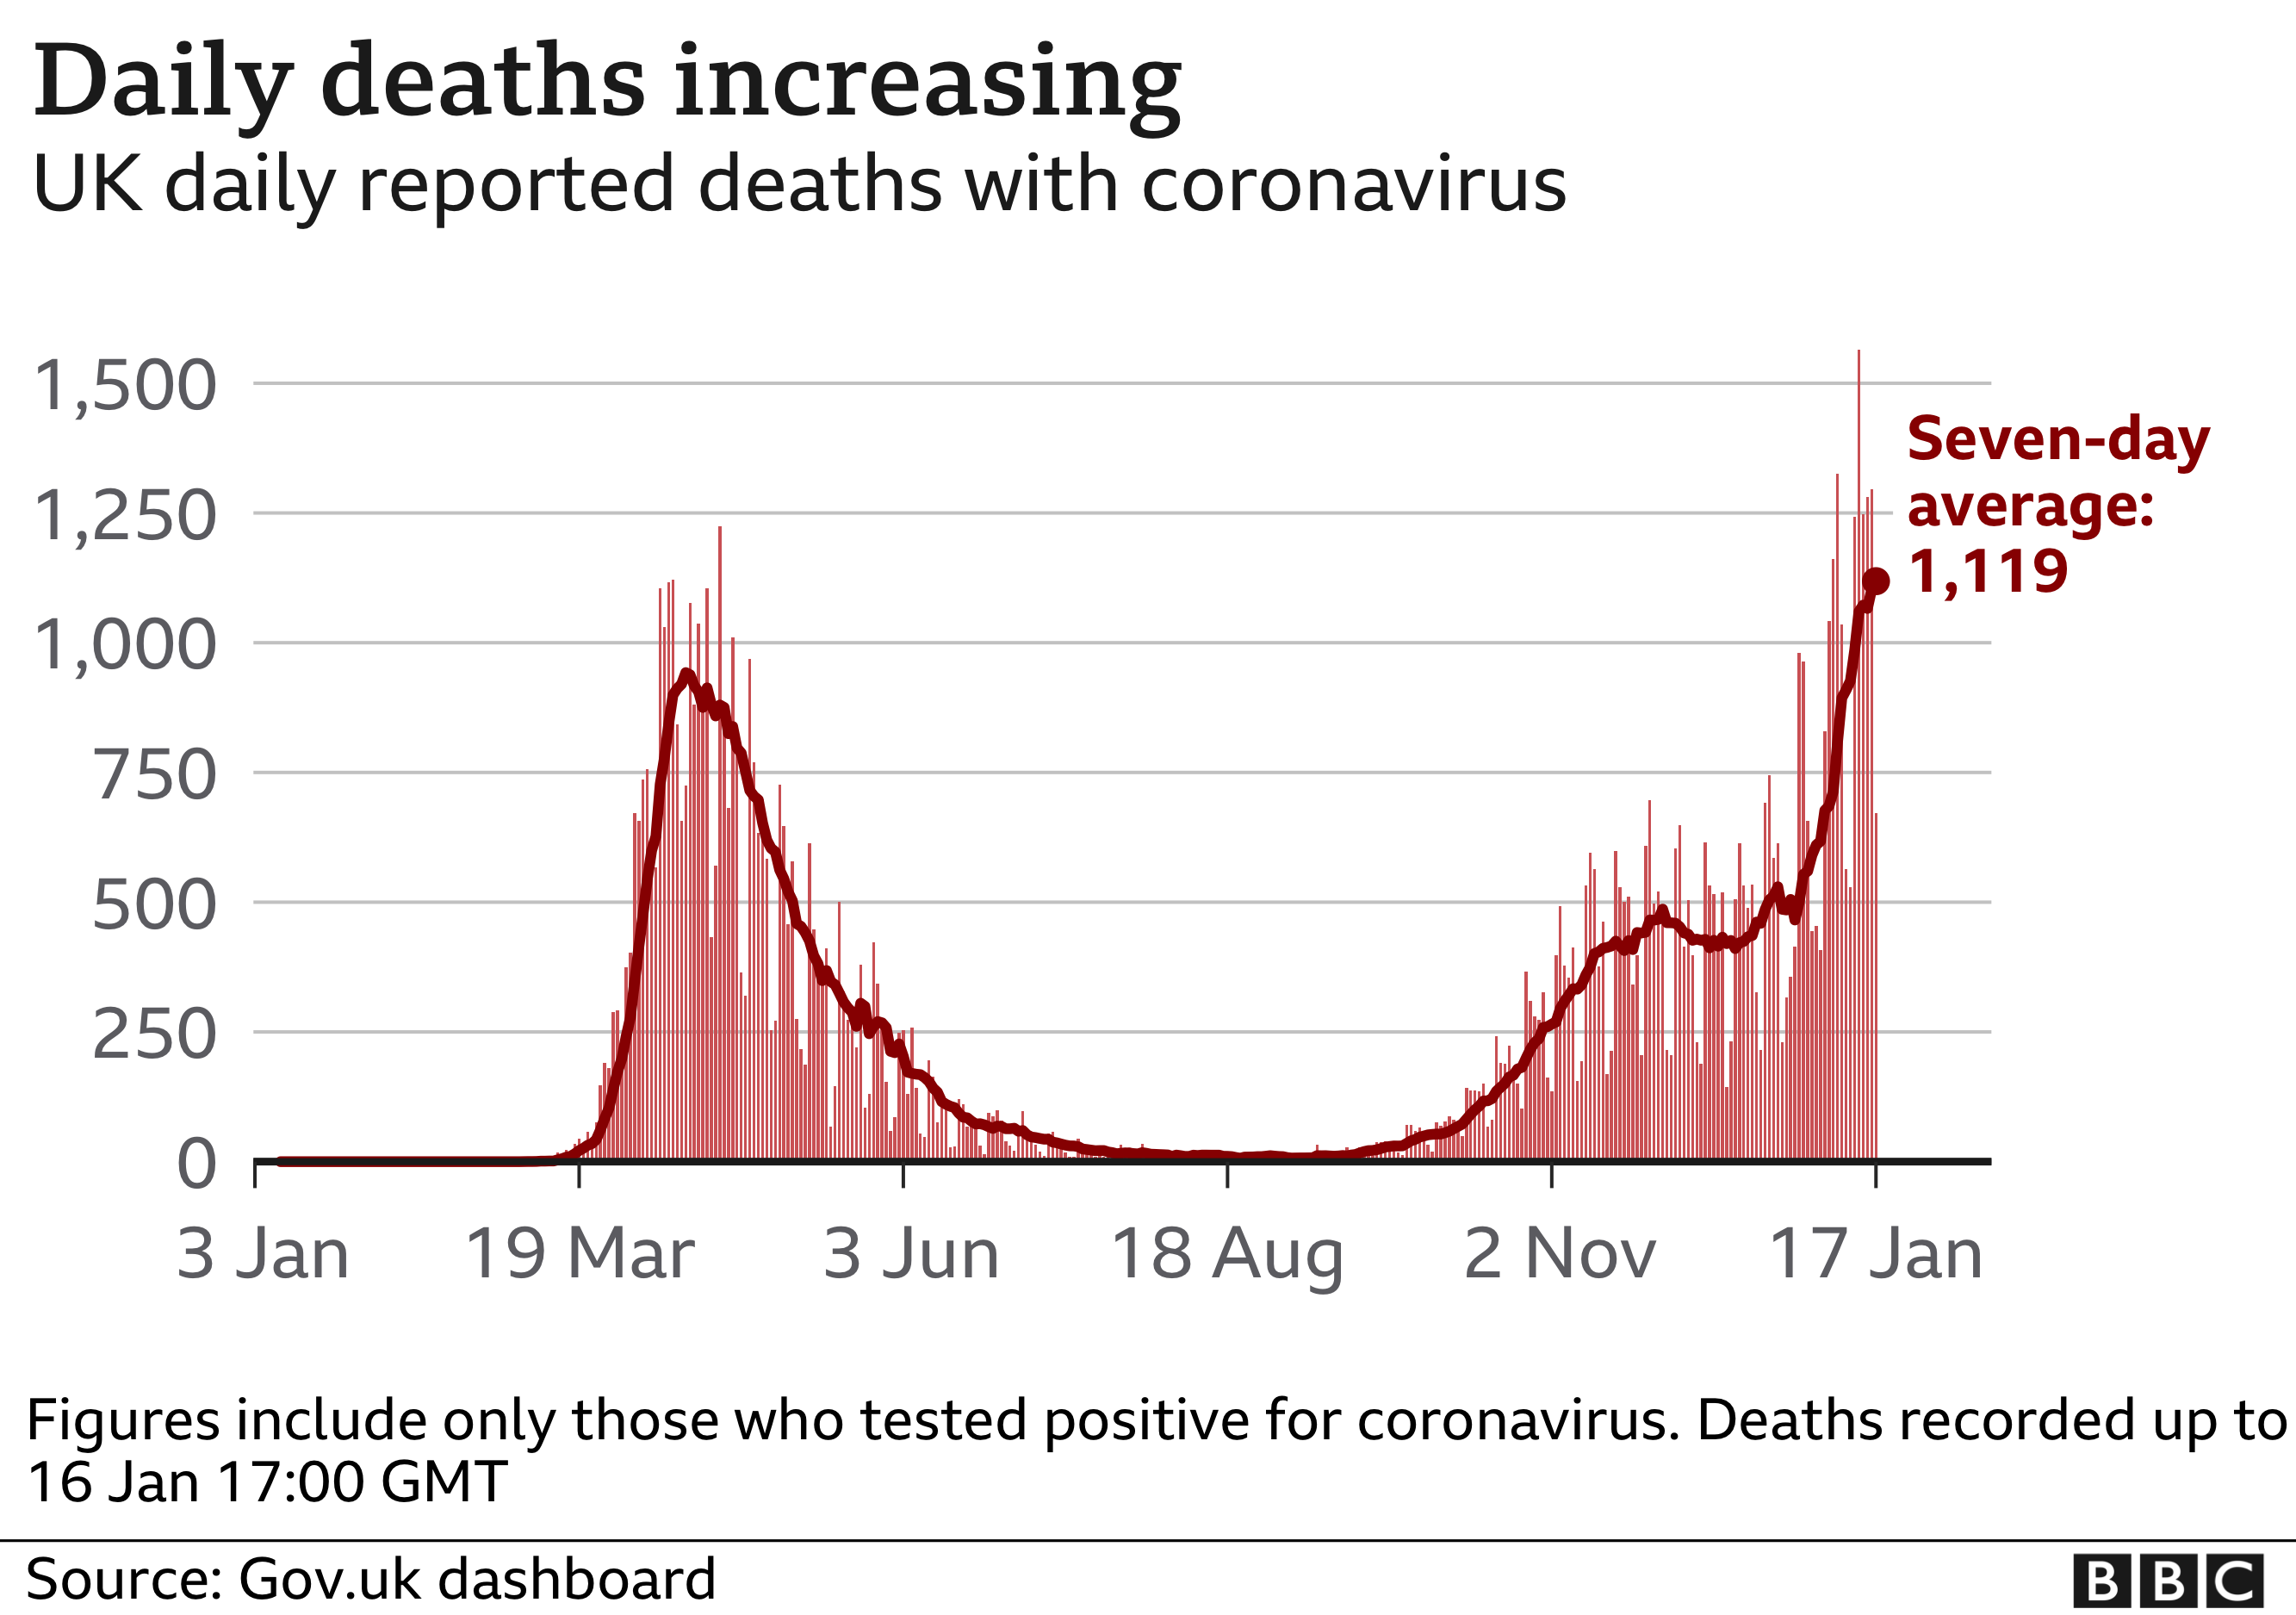 Chart showing daily deaths increasing in the UK. Updated 17 Jan.